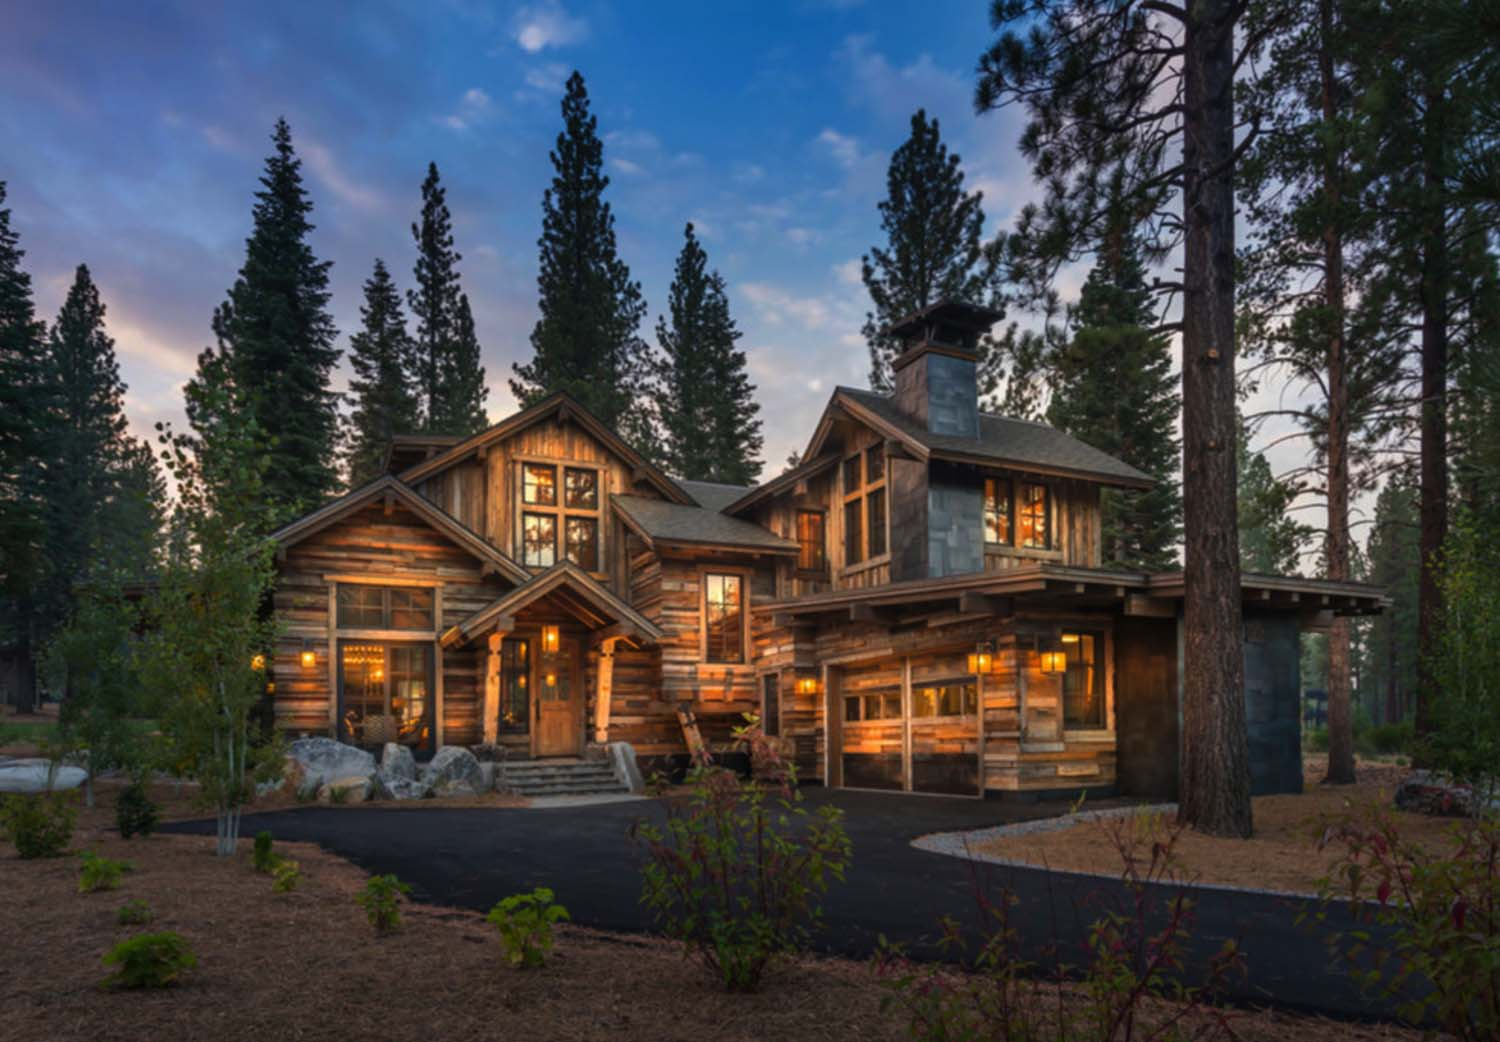 Cozy Mountain Style Cabin Getaway Martis Camp California